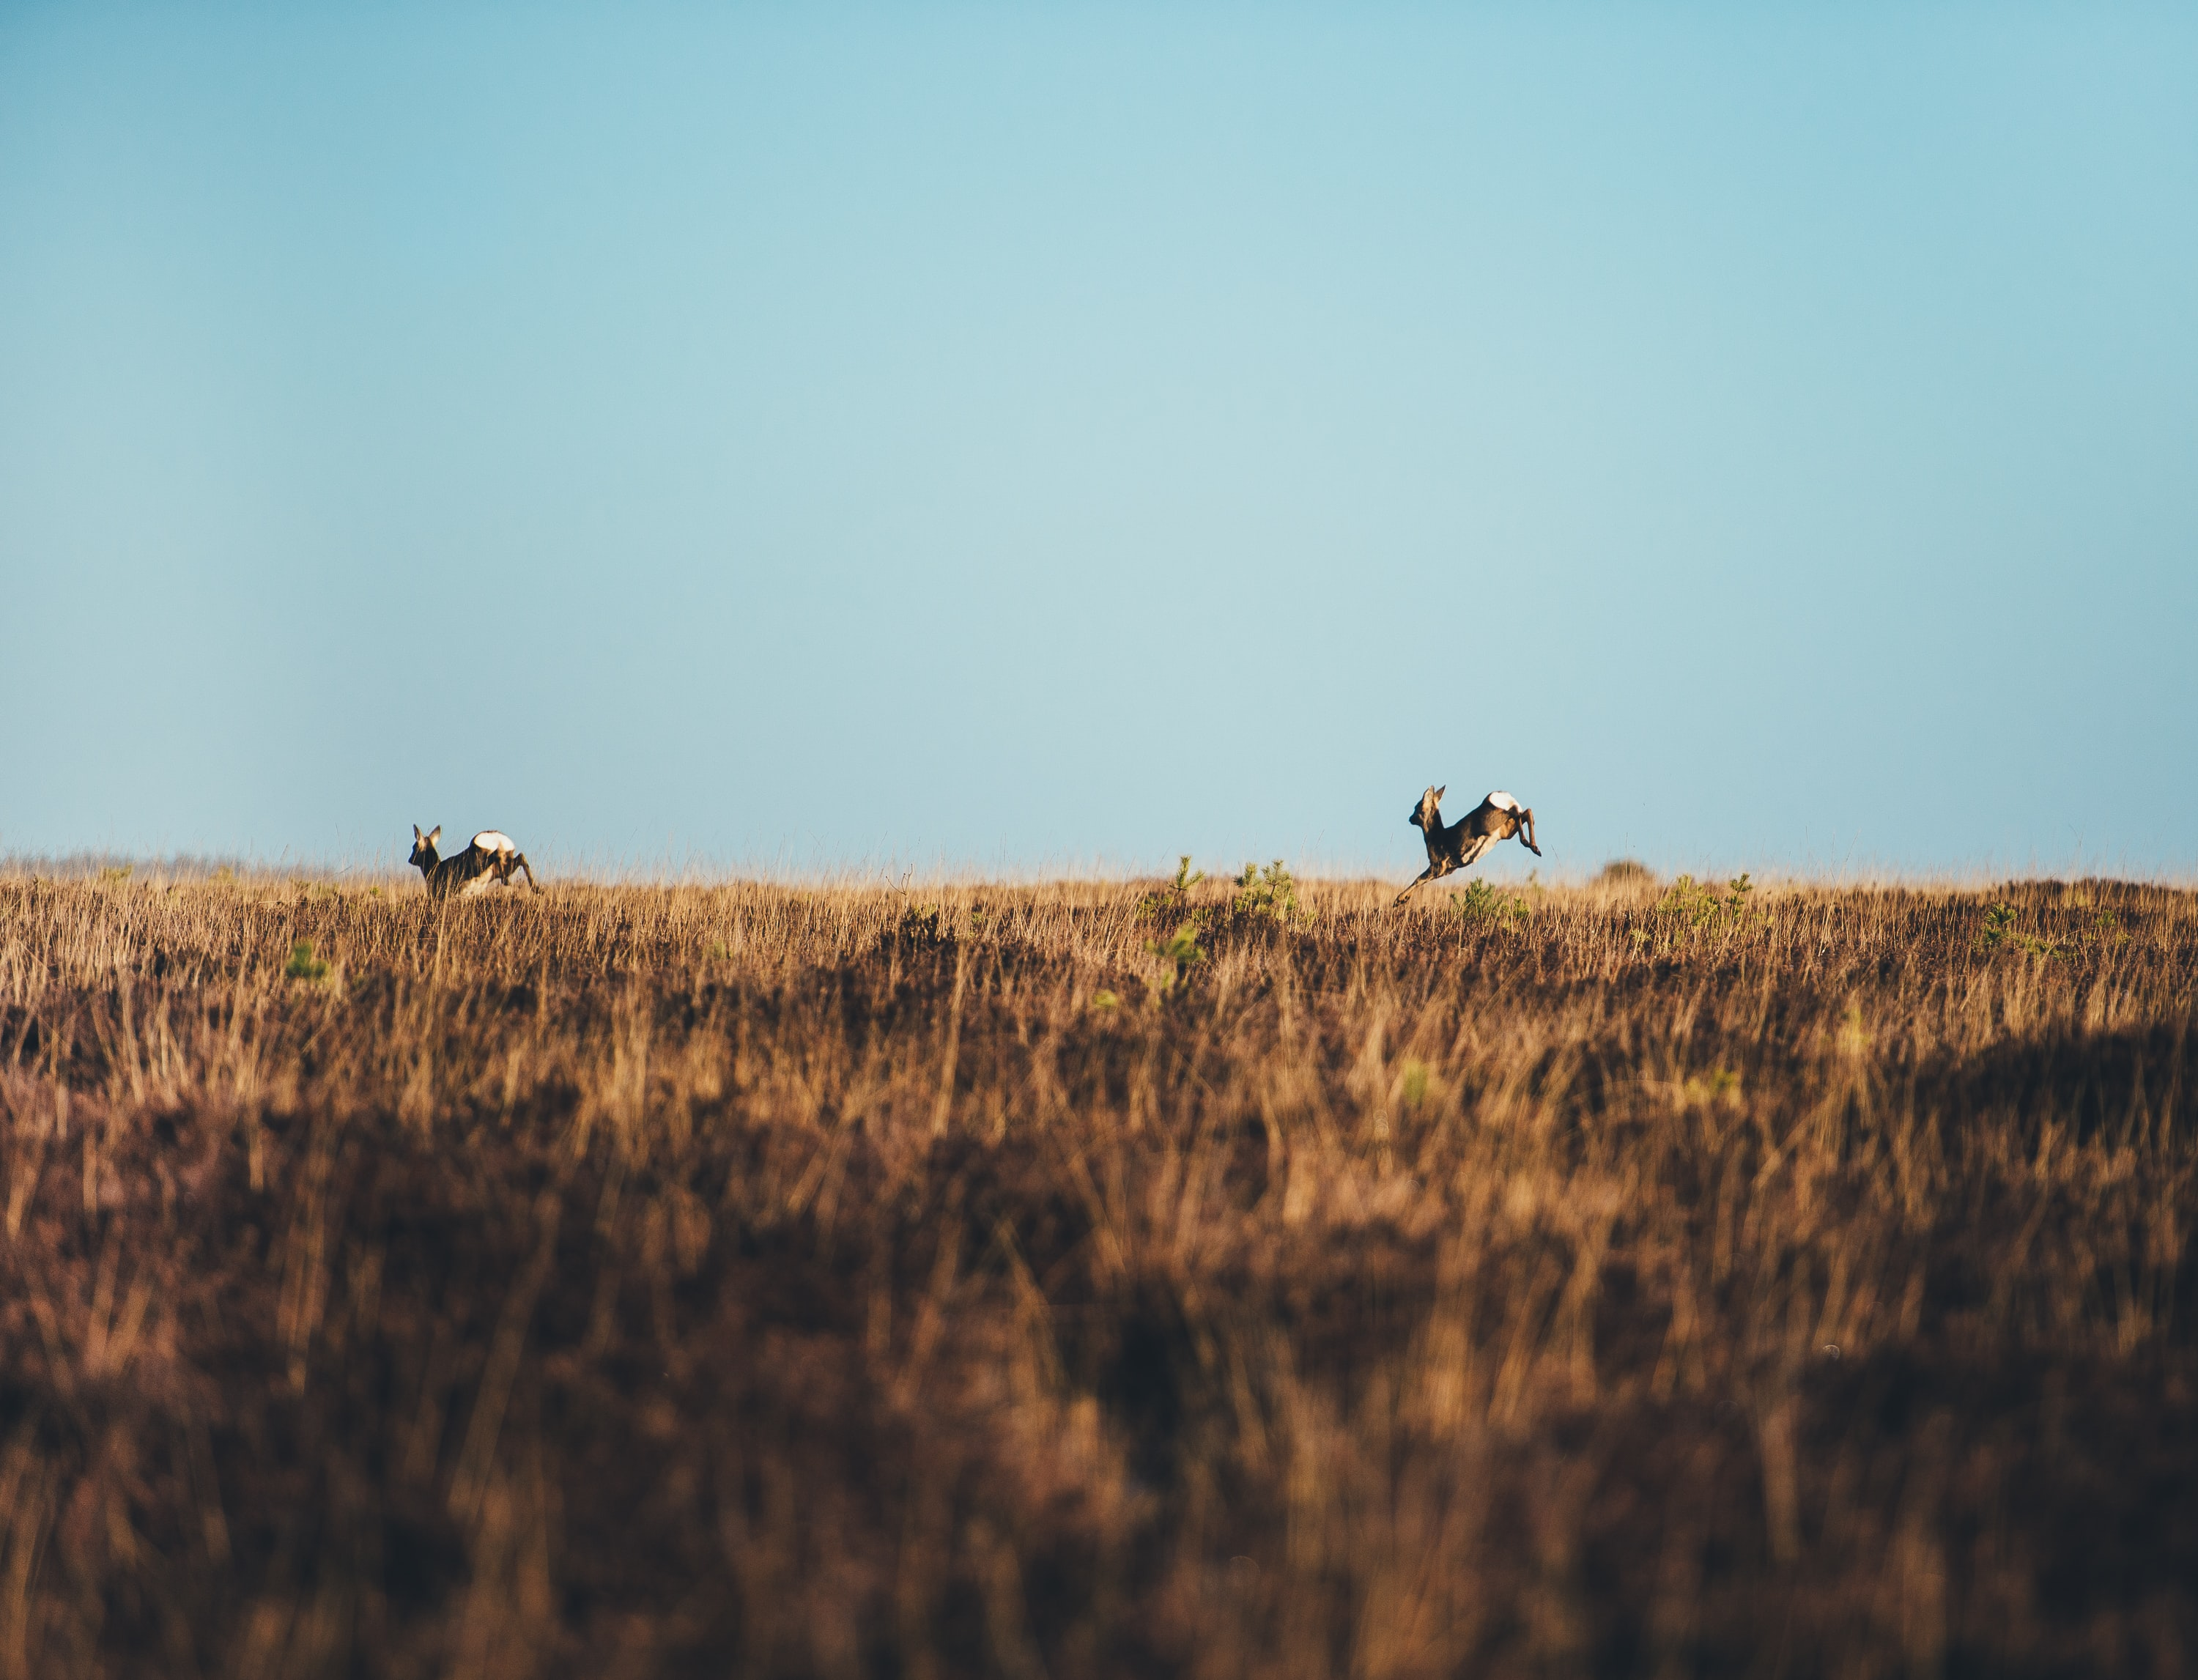 two brown deer running on brown grass field at daytime